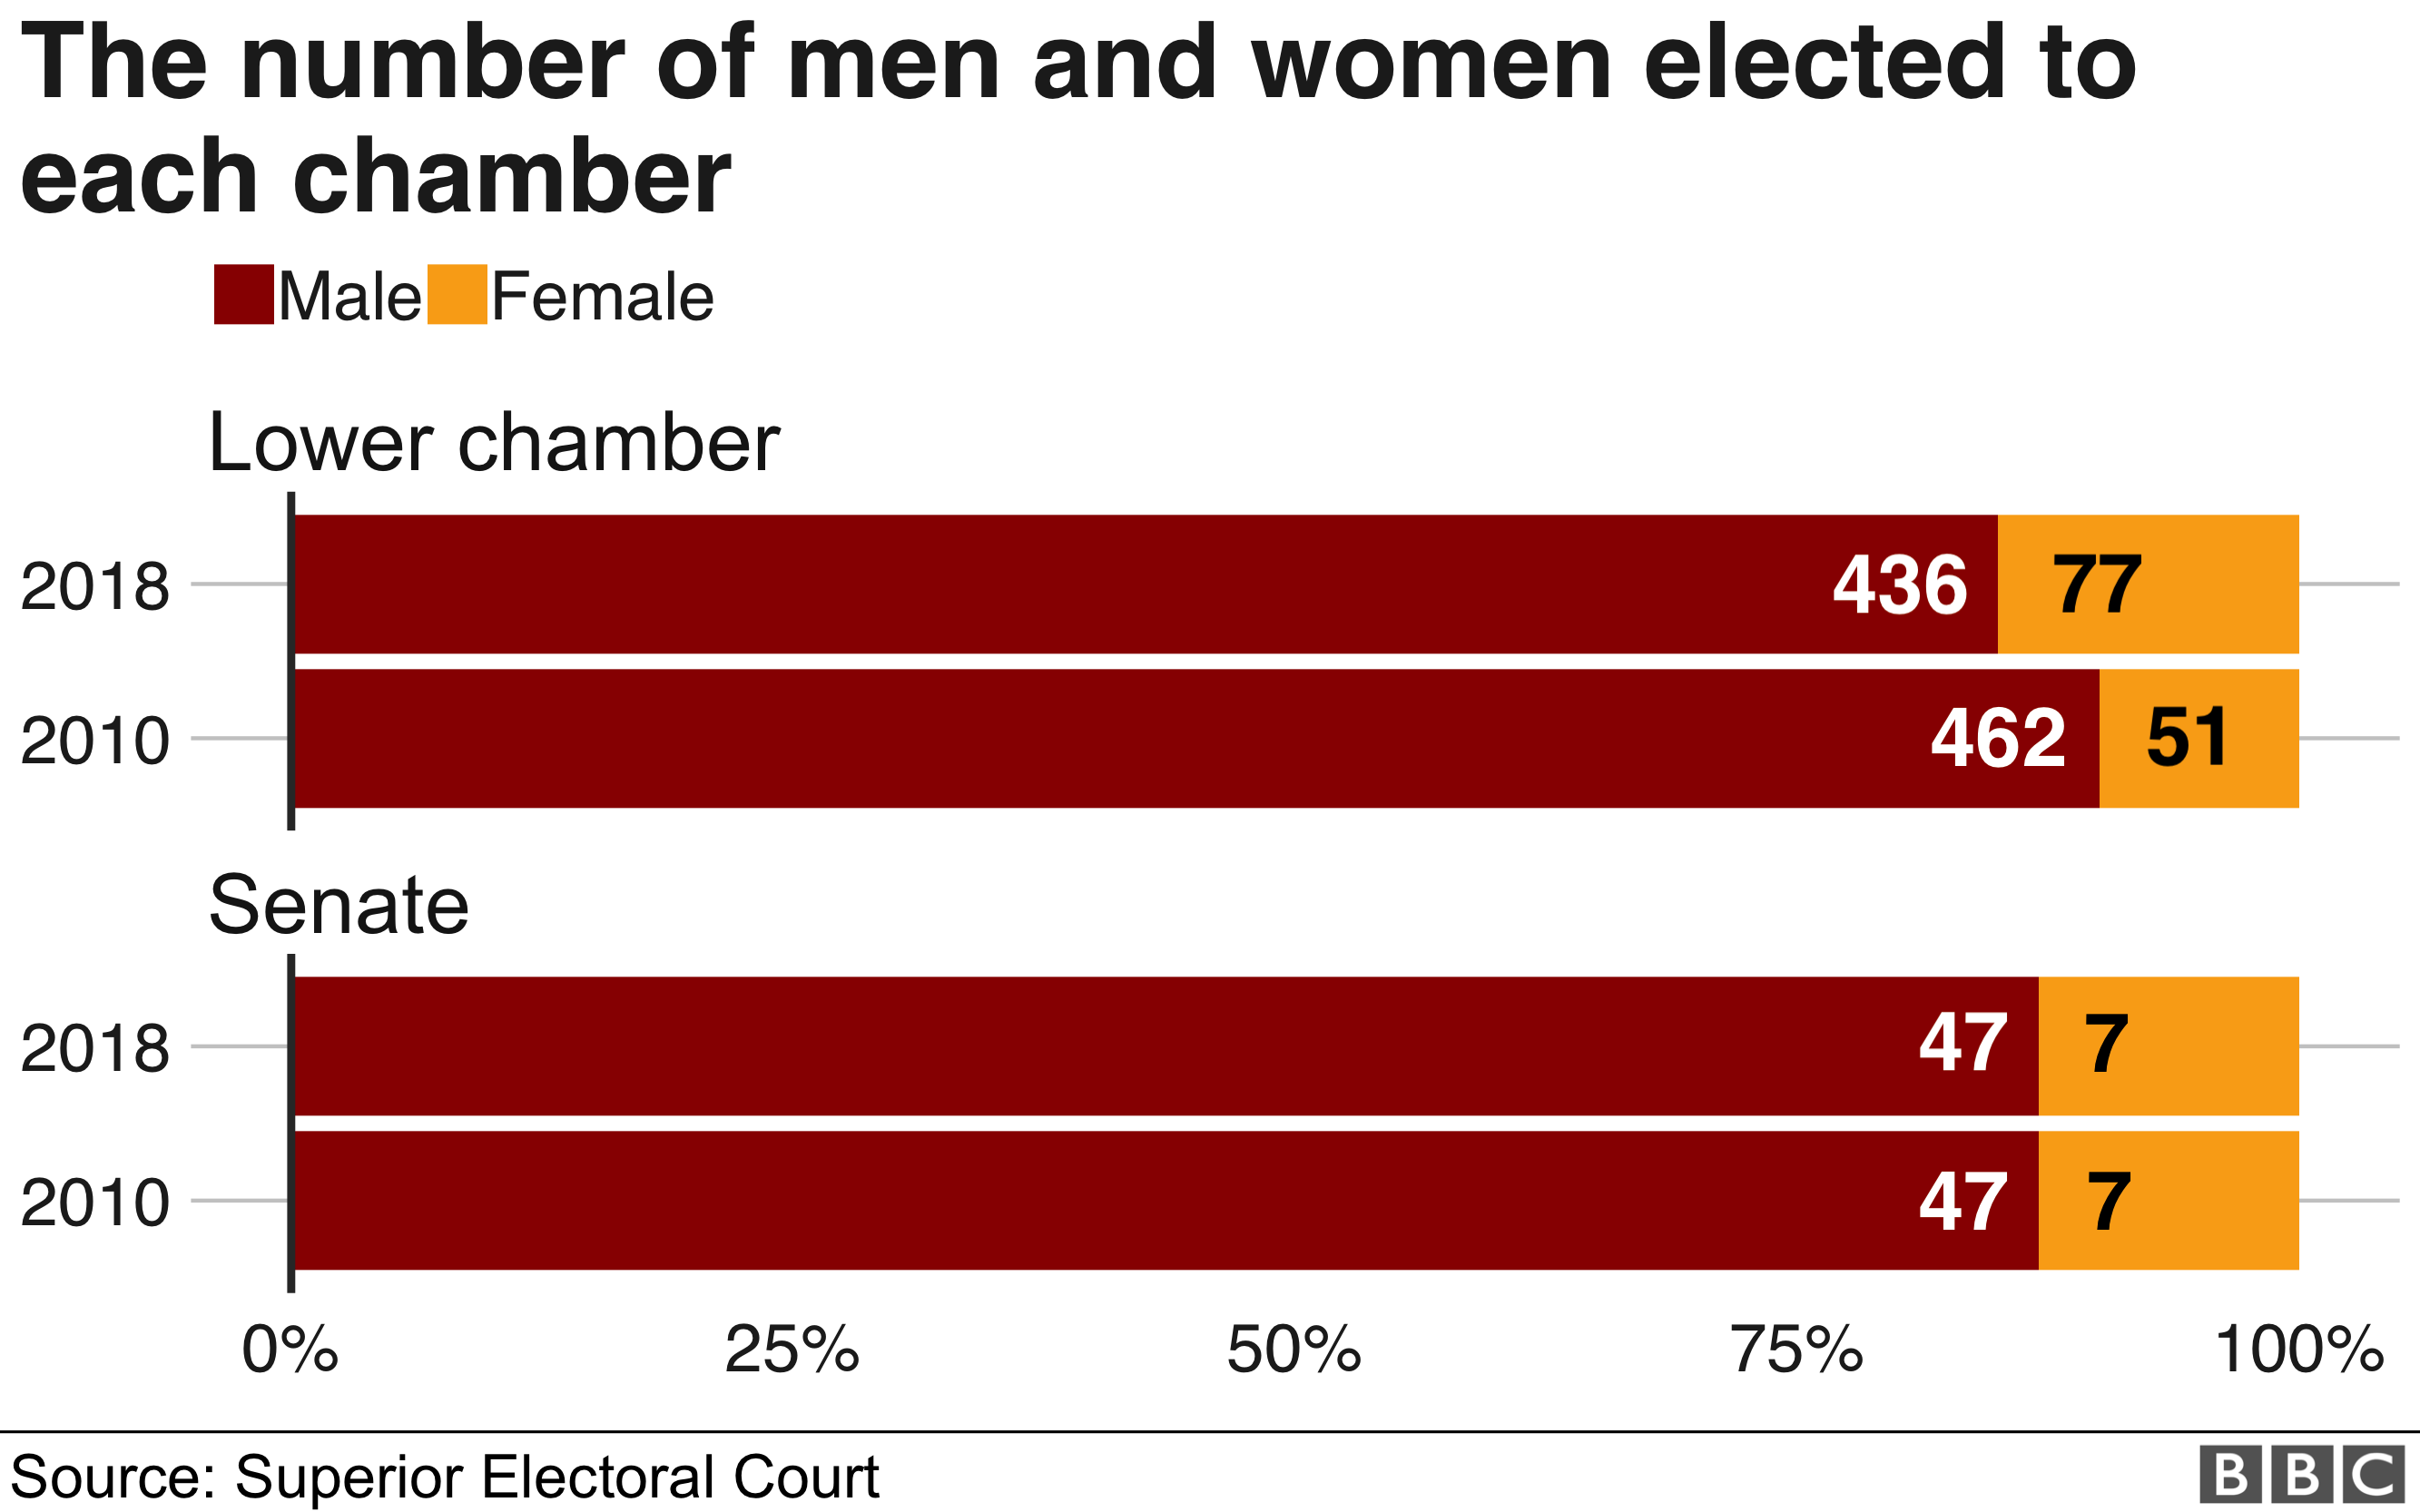 There was not much of an increase in female representation in parliament, compared to eight years ago